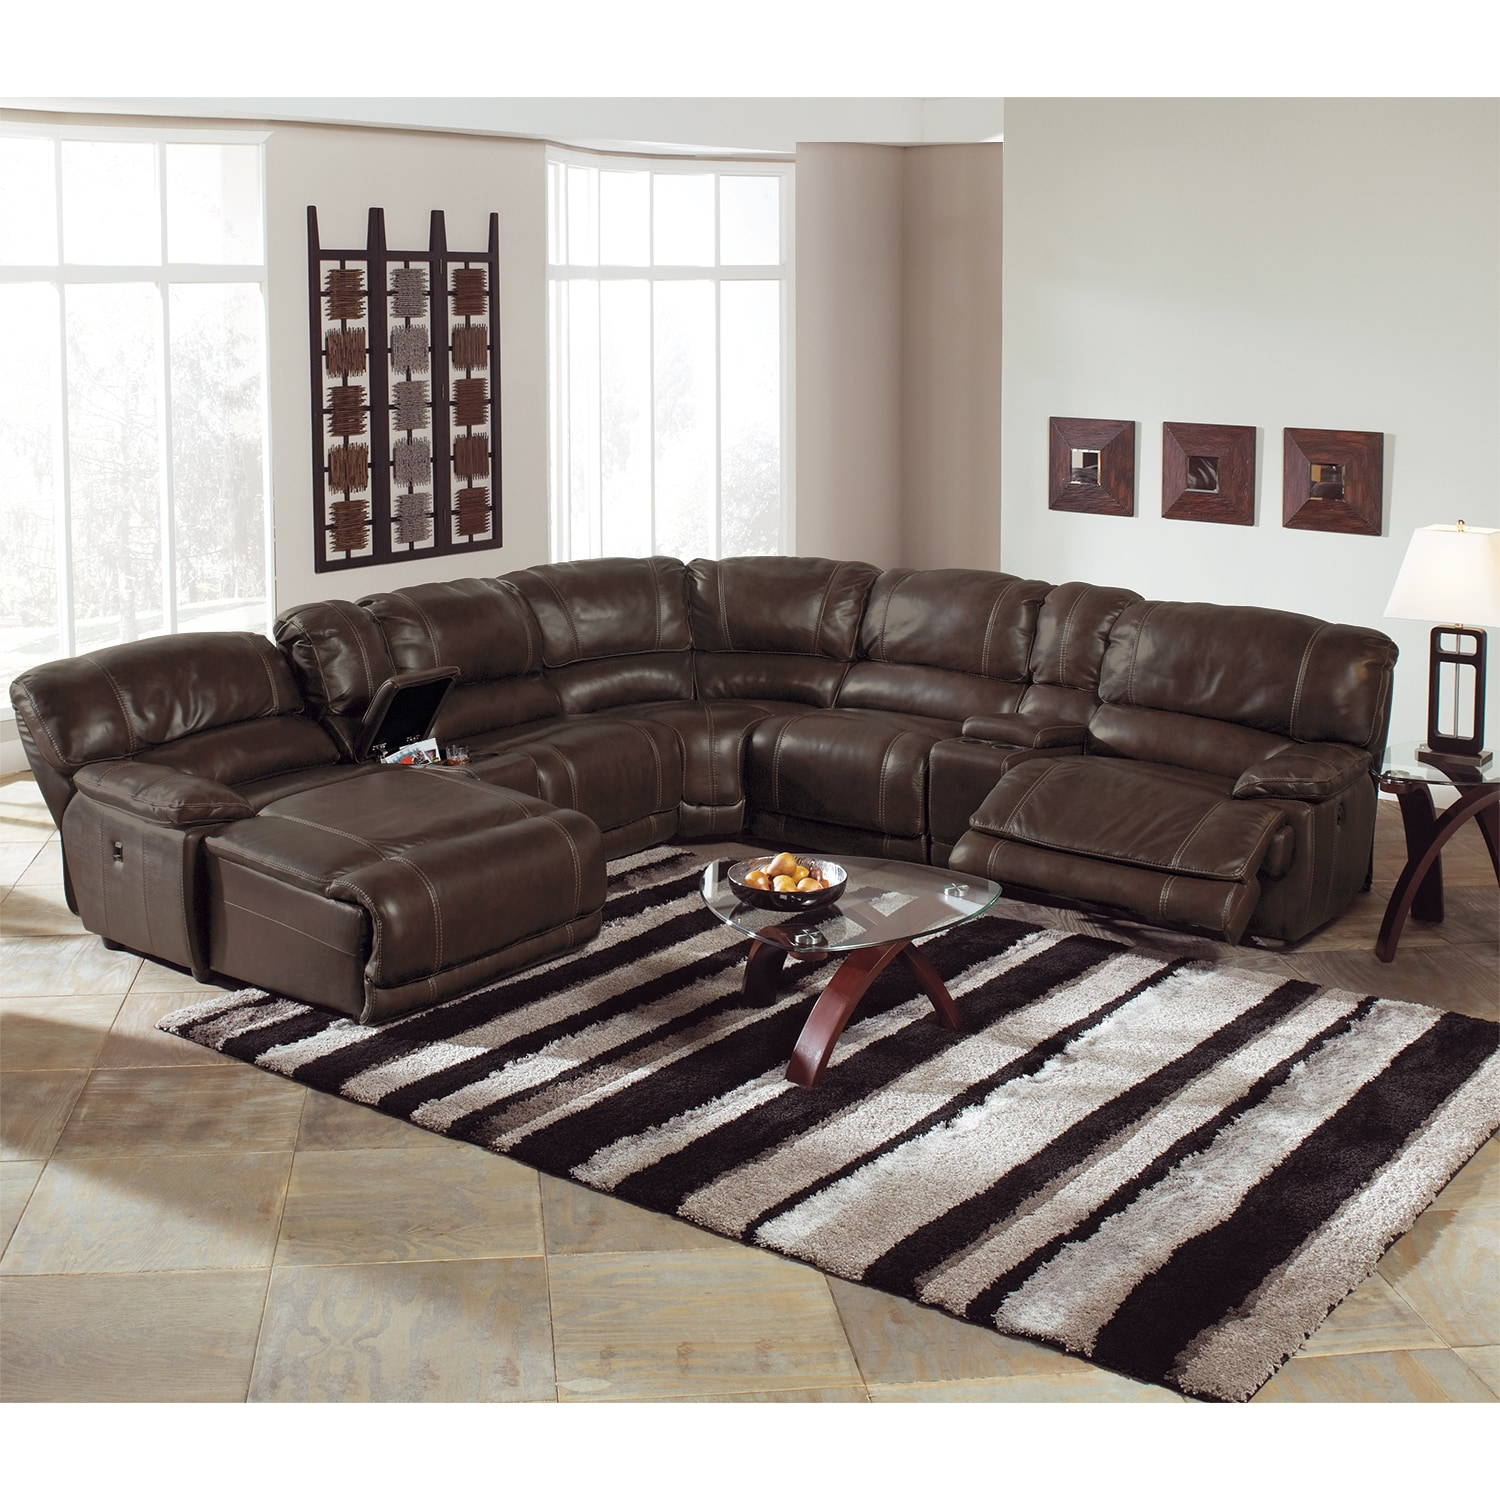 St malo 6 piece power reclining sectional with left for Brown sectionals with chaise